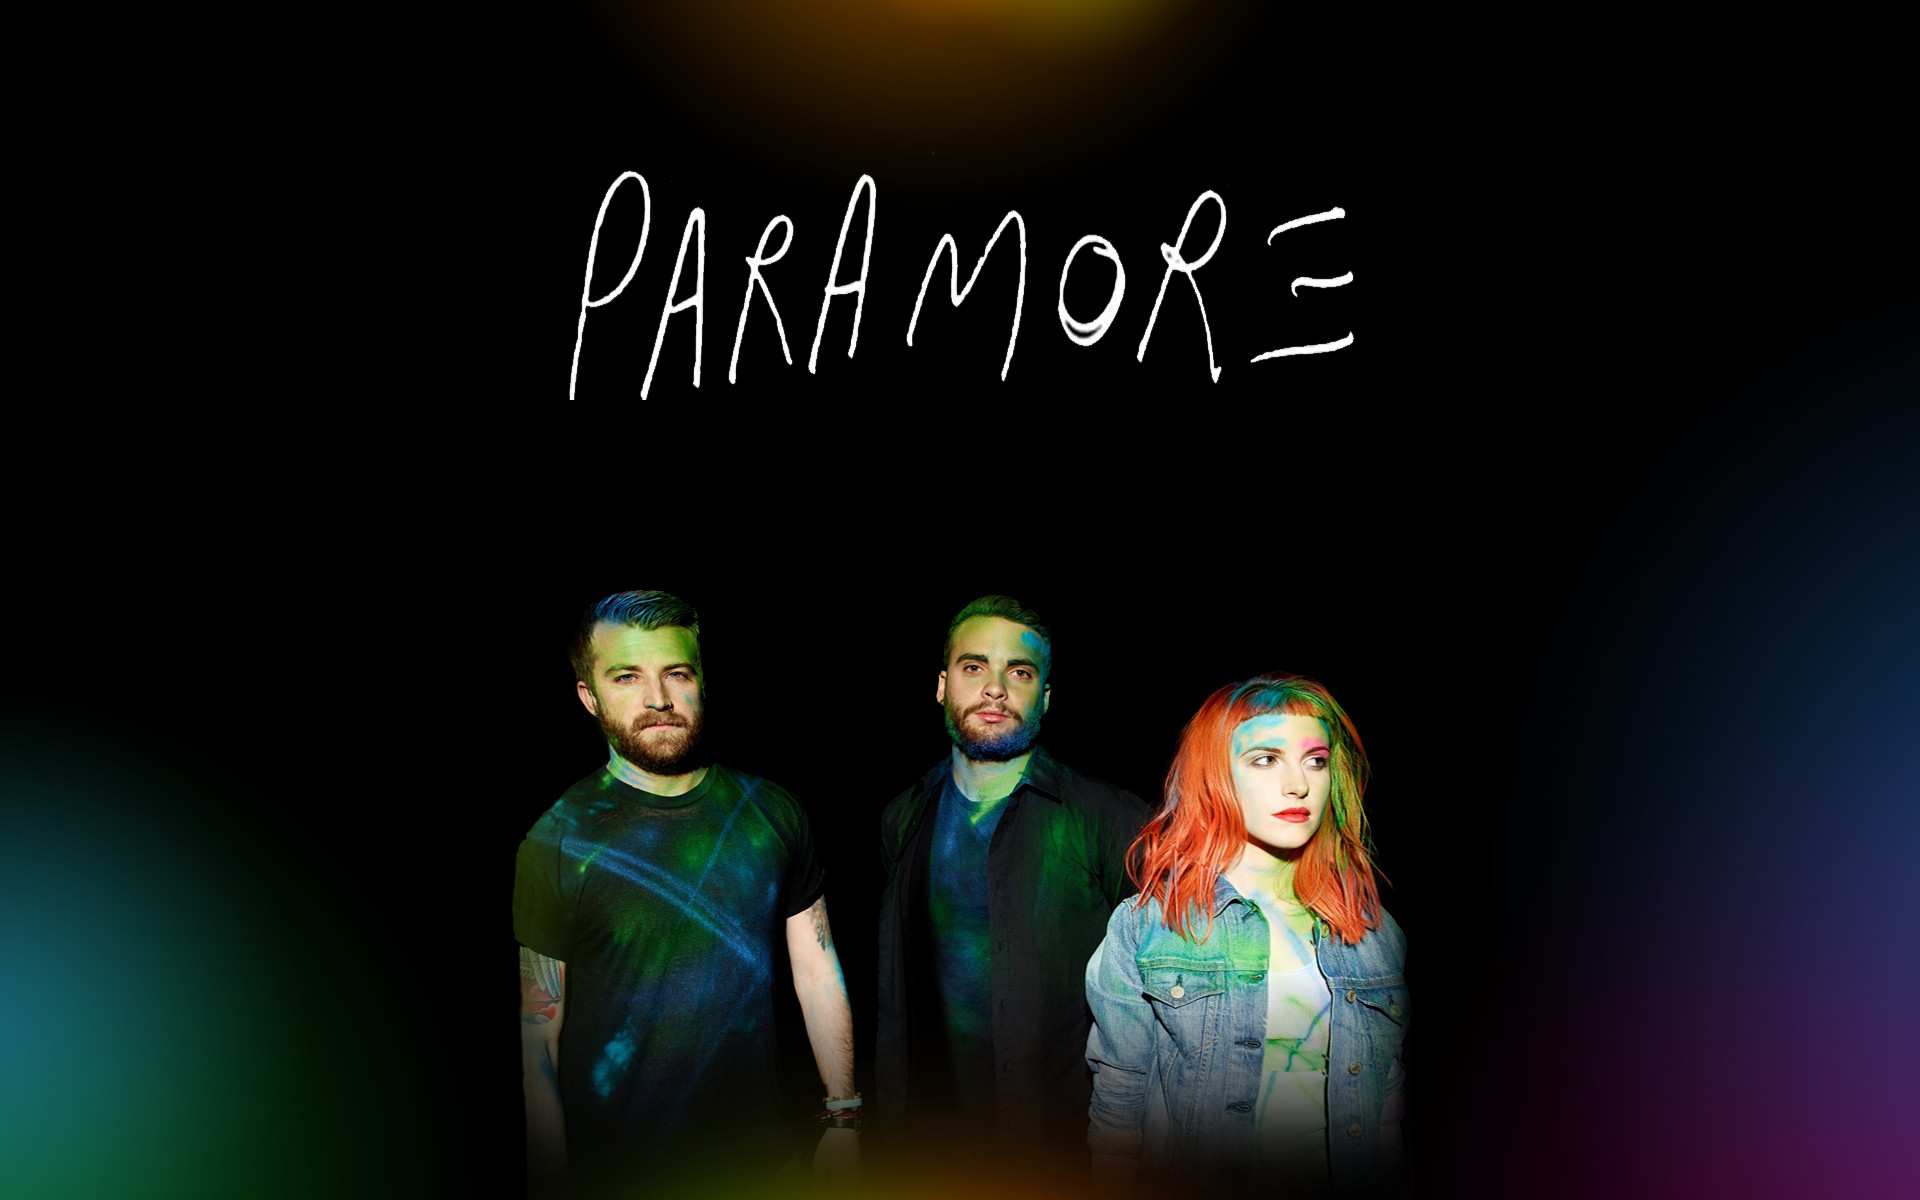 Paramore Wallpapers 2018 ·① WallpaperTag